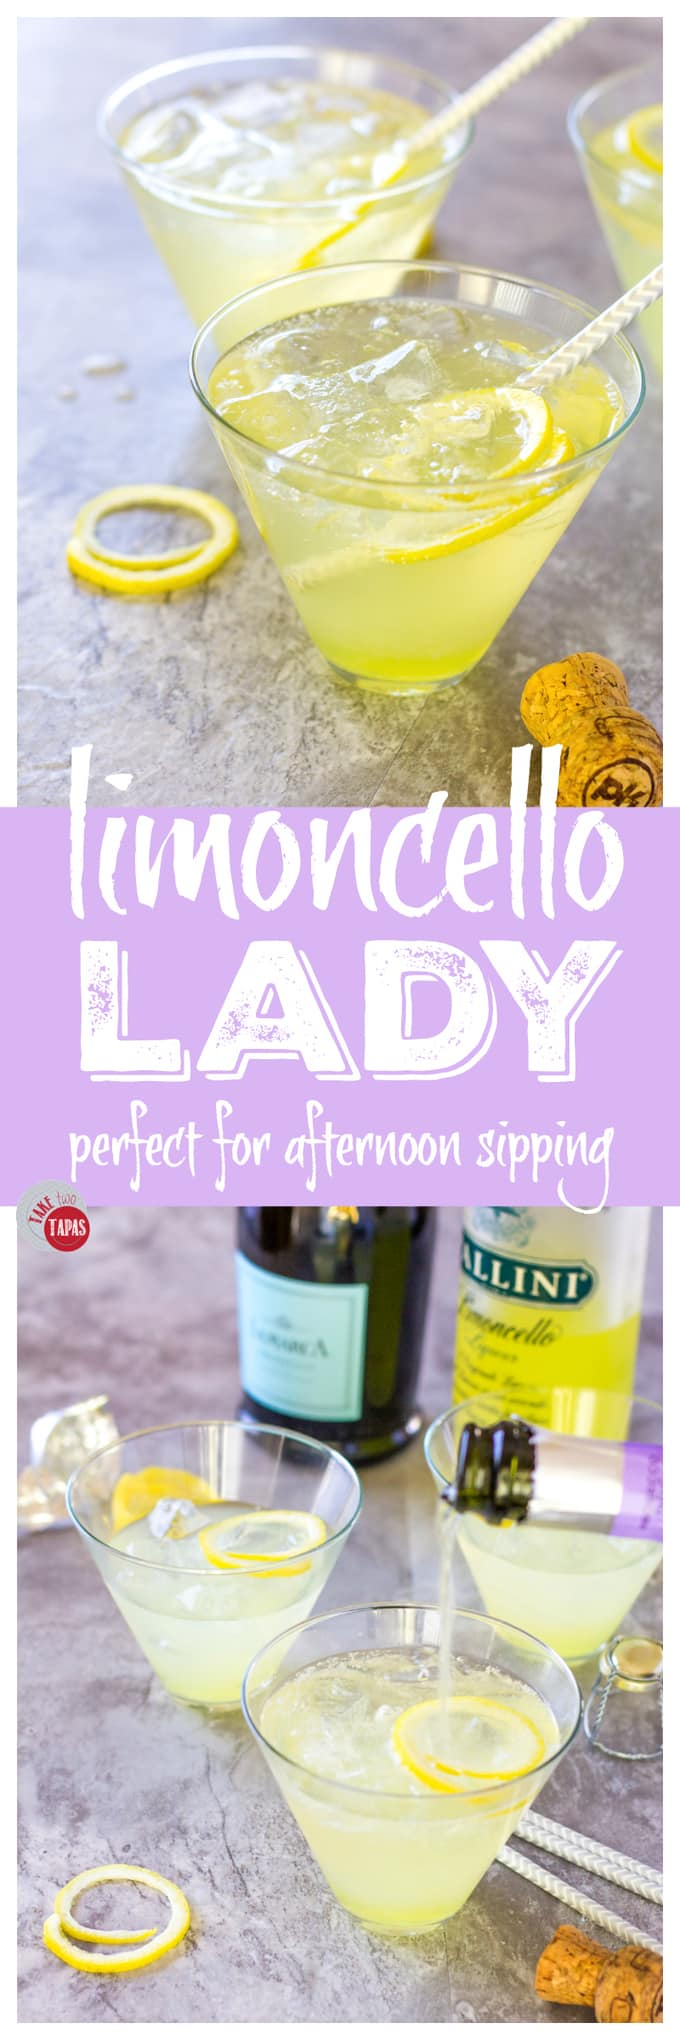 Limoncello Lady Prosecco Punch or Single Cocktail | Take Two Tapas | #Limoncello #ProseccoCocktail #3IngredientCocktails #SimpleCocktailRecipes #Summer